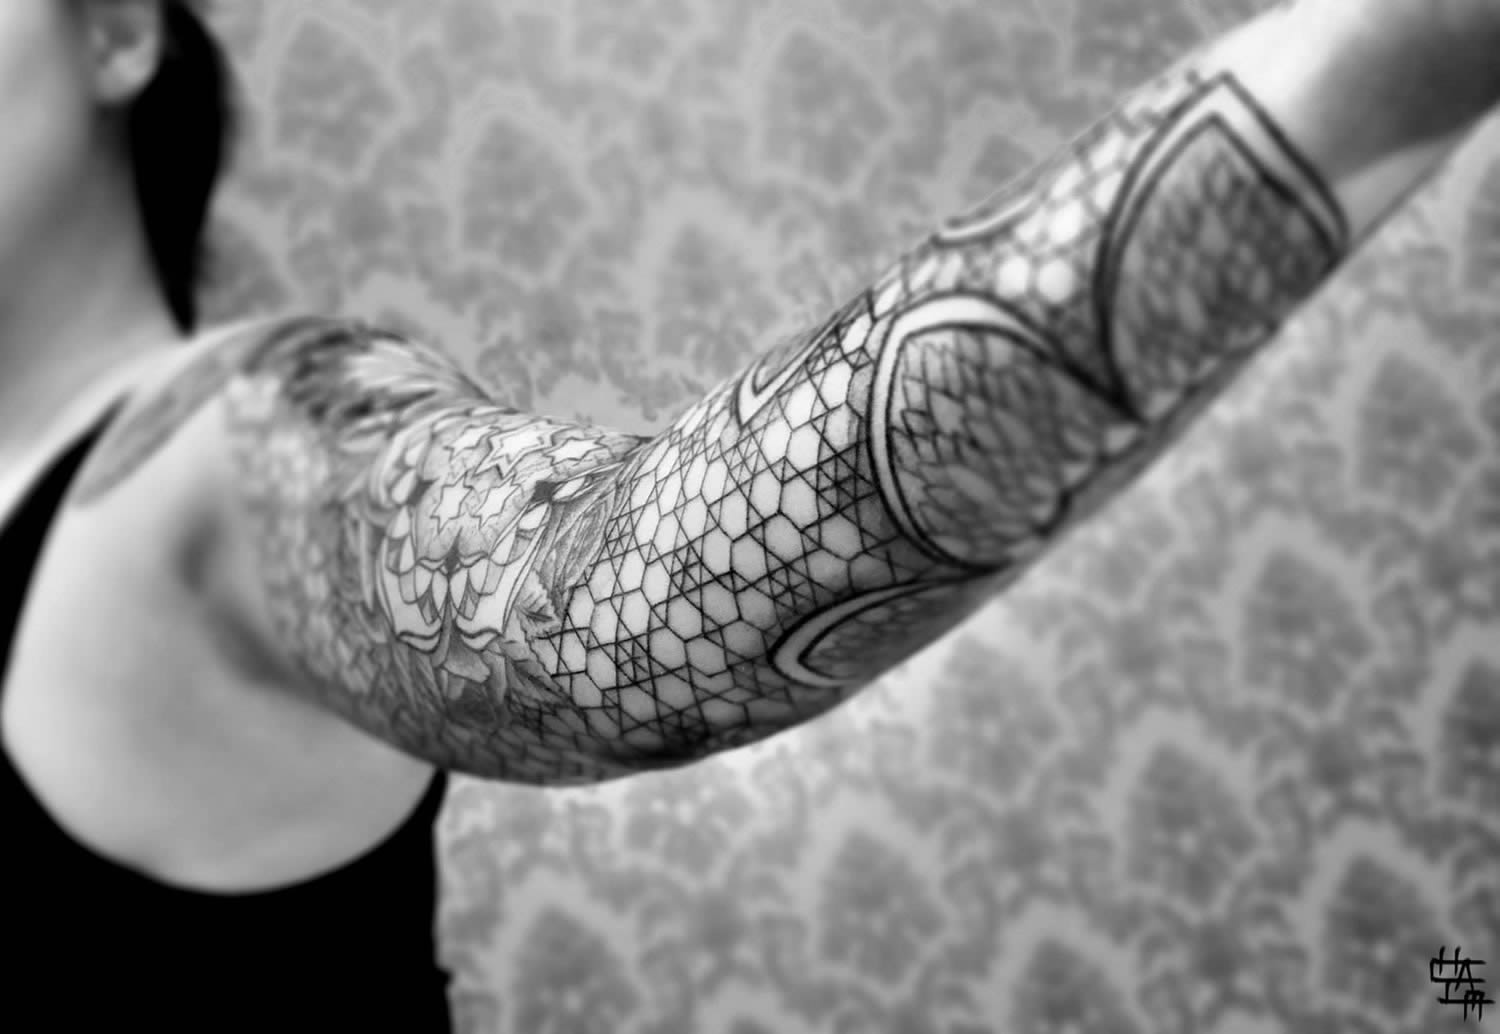 geometric pattern tattoo on arm by chaim machlev